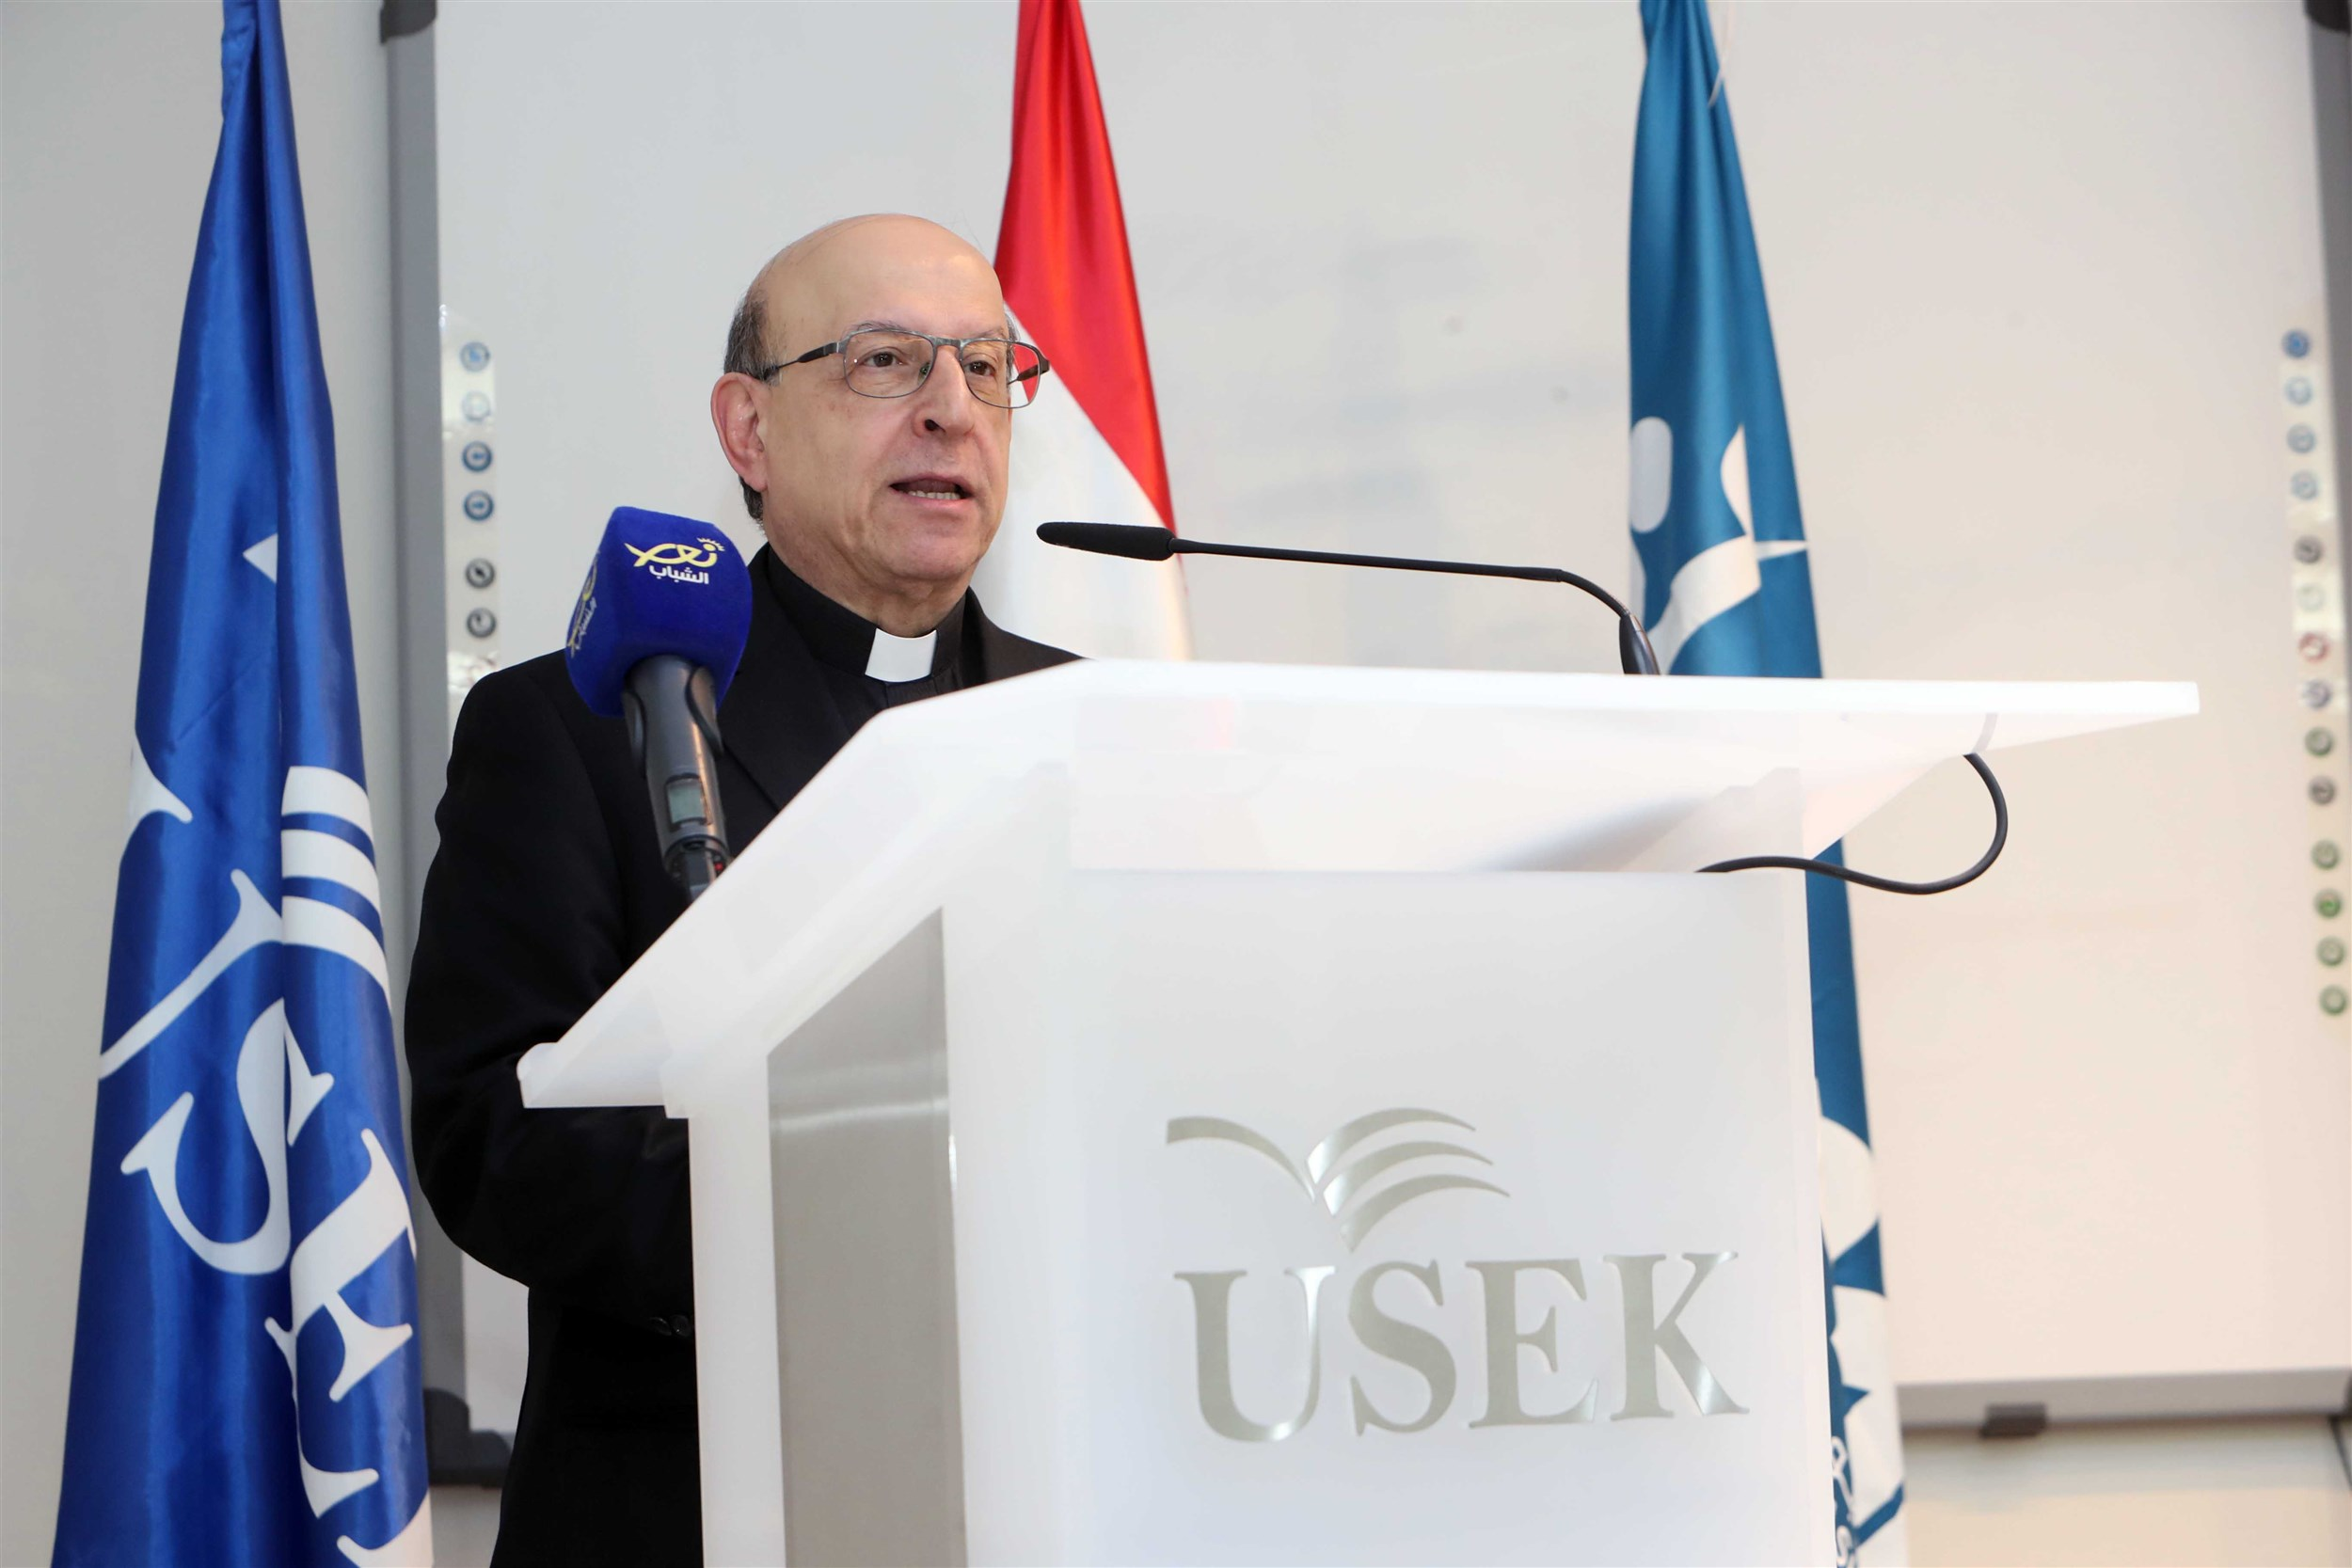 president of holy spitiy univesity of kaslik father professor georges hobeika shares his support to his students and the iaaf awards competition that challenges and inspires them to aim higher and give more.